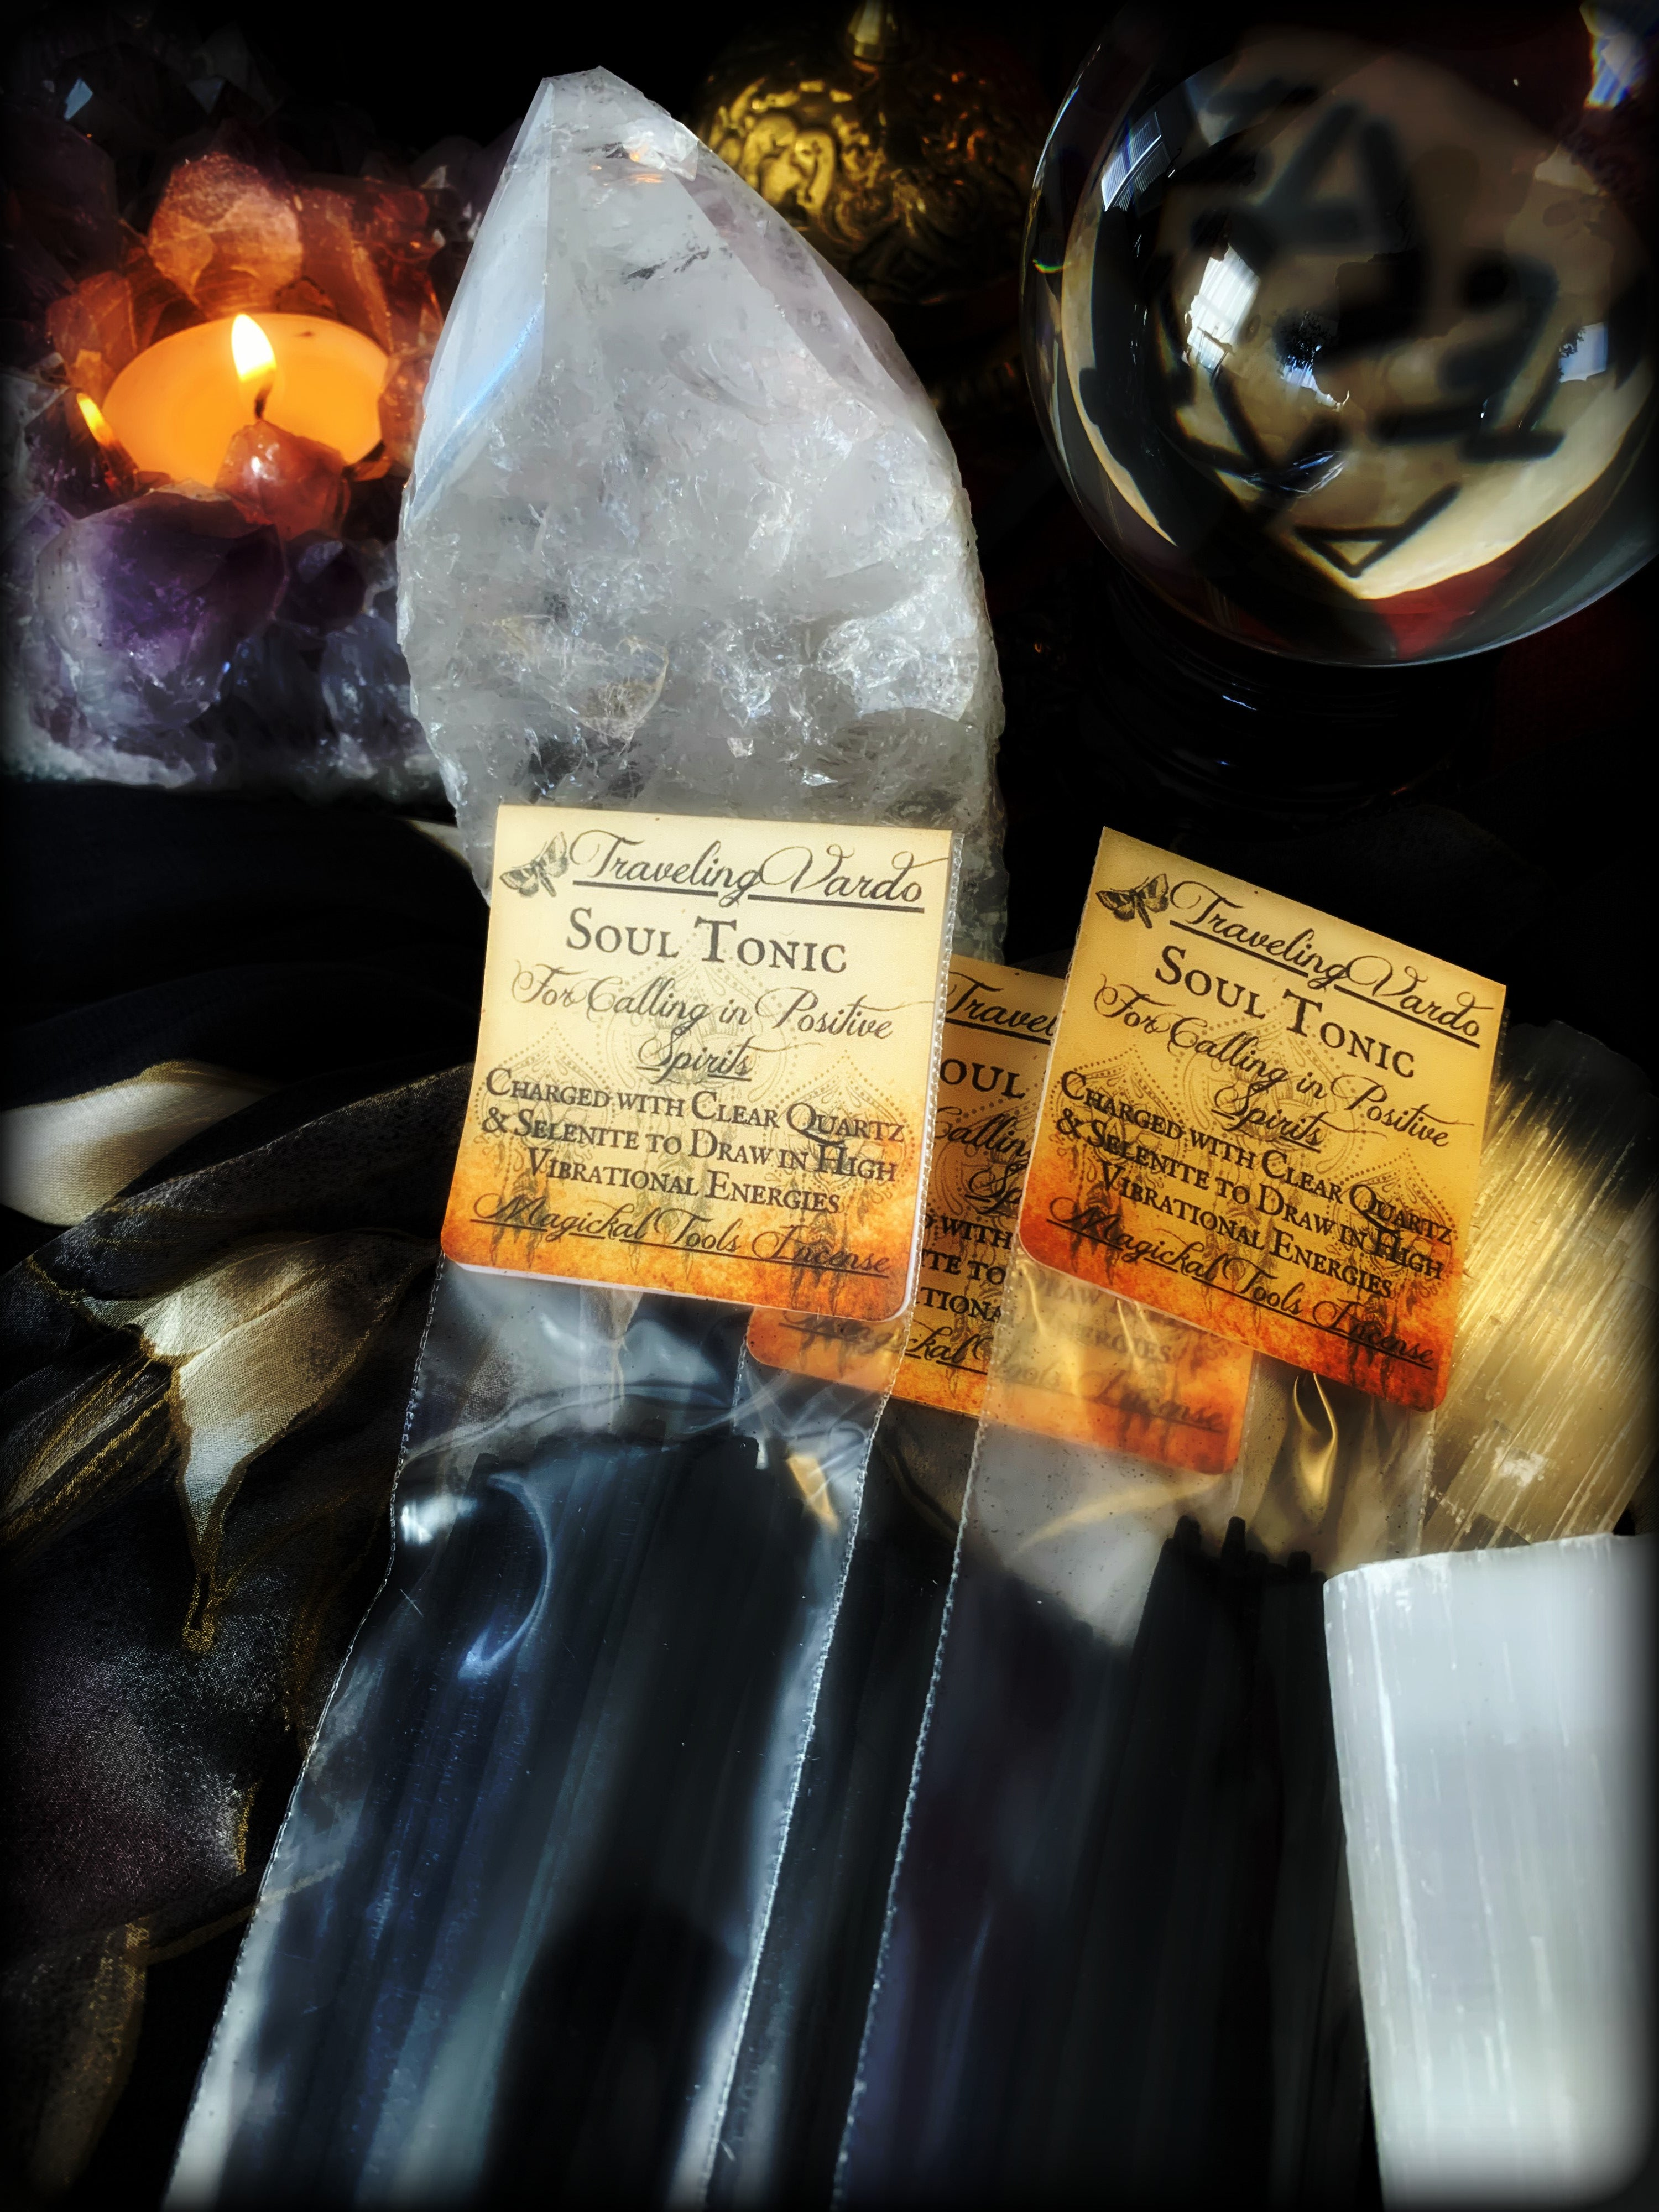 SOUL TONIC ~ Magickal Tools Incense for Calling in Positive Spirits and High Vibrational Energies